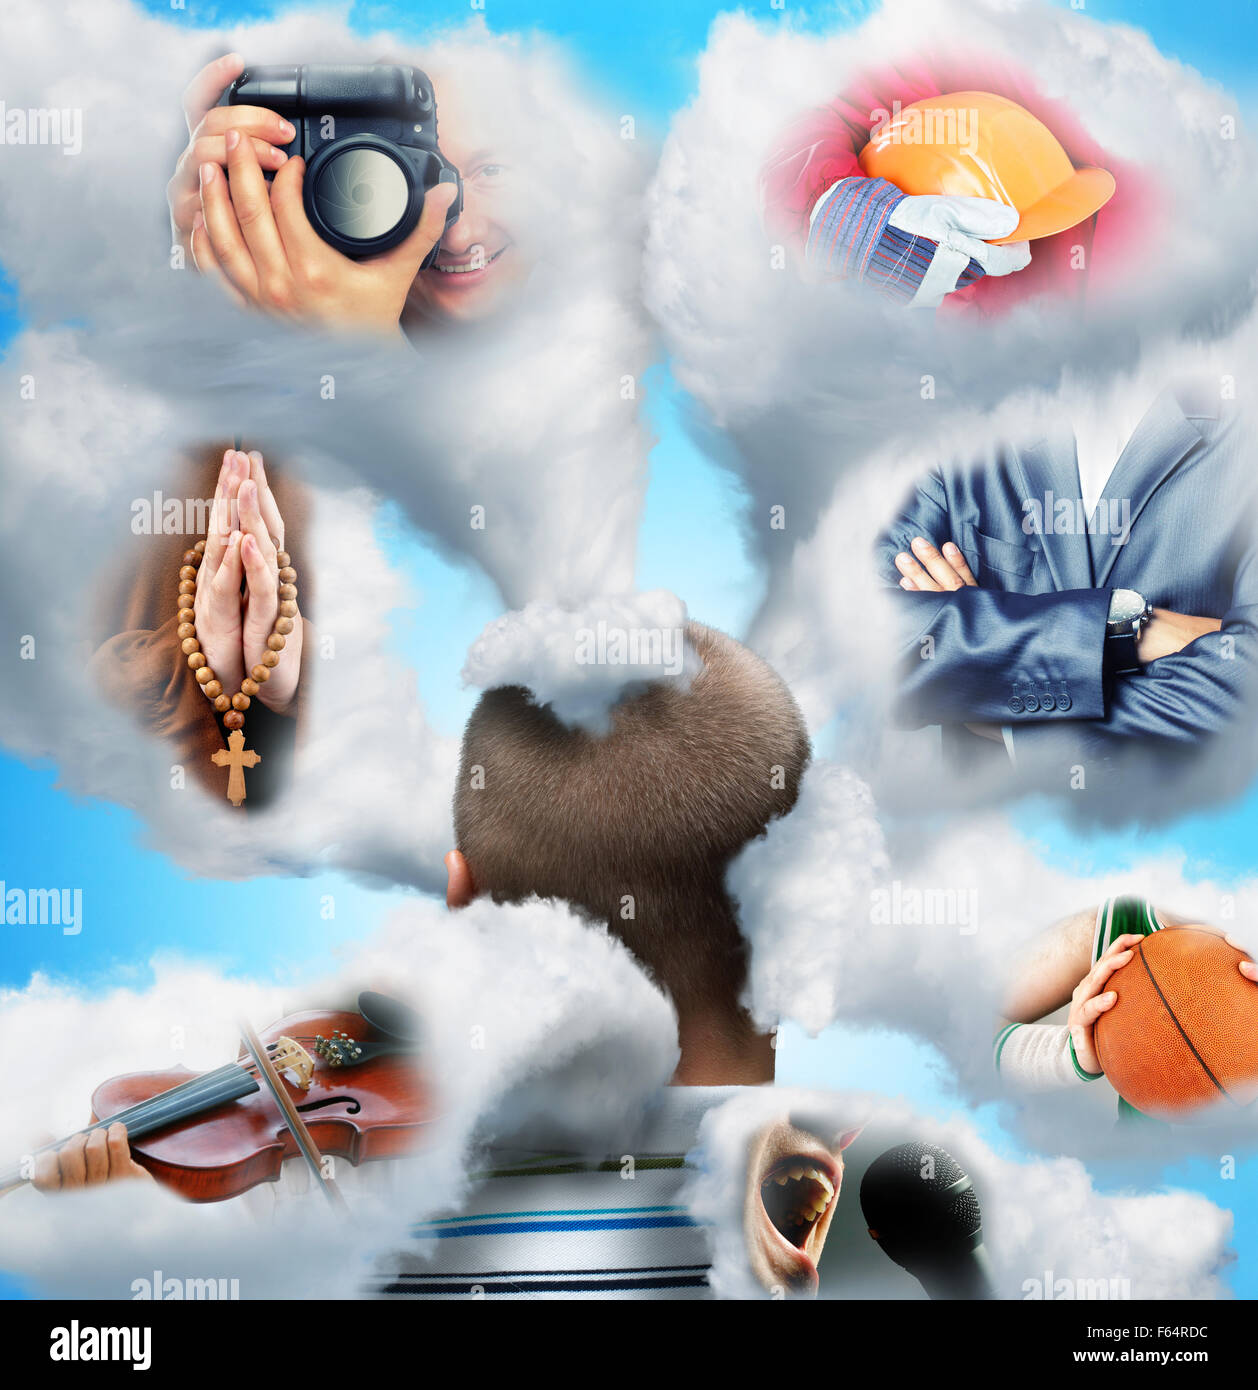 Men head in clouds imagines various professions - Stock Image